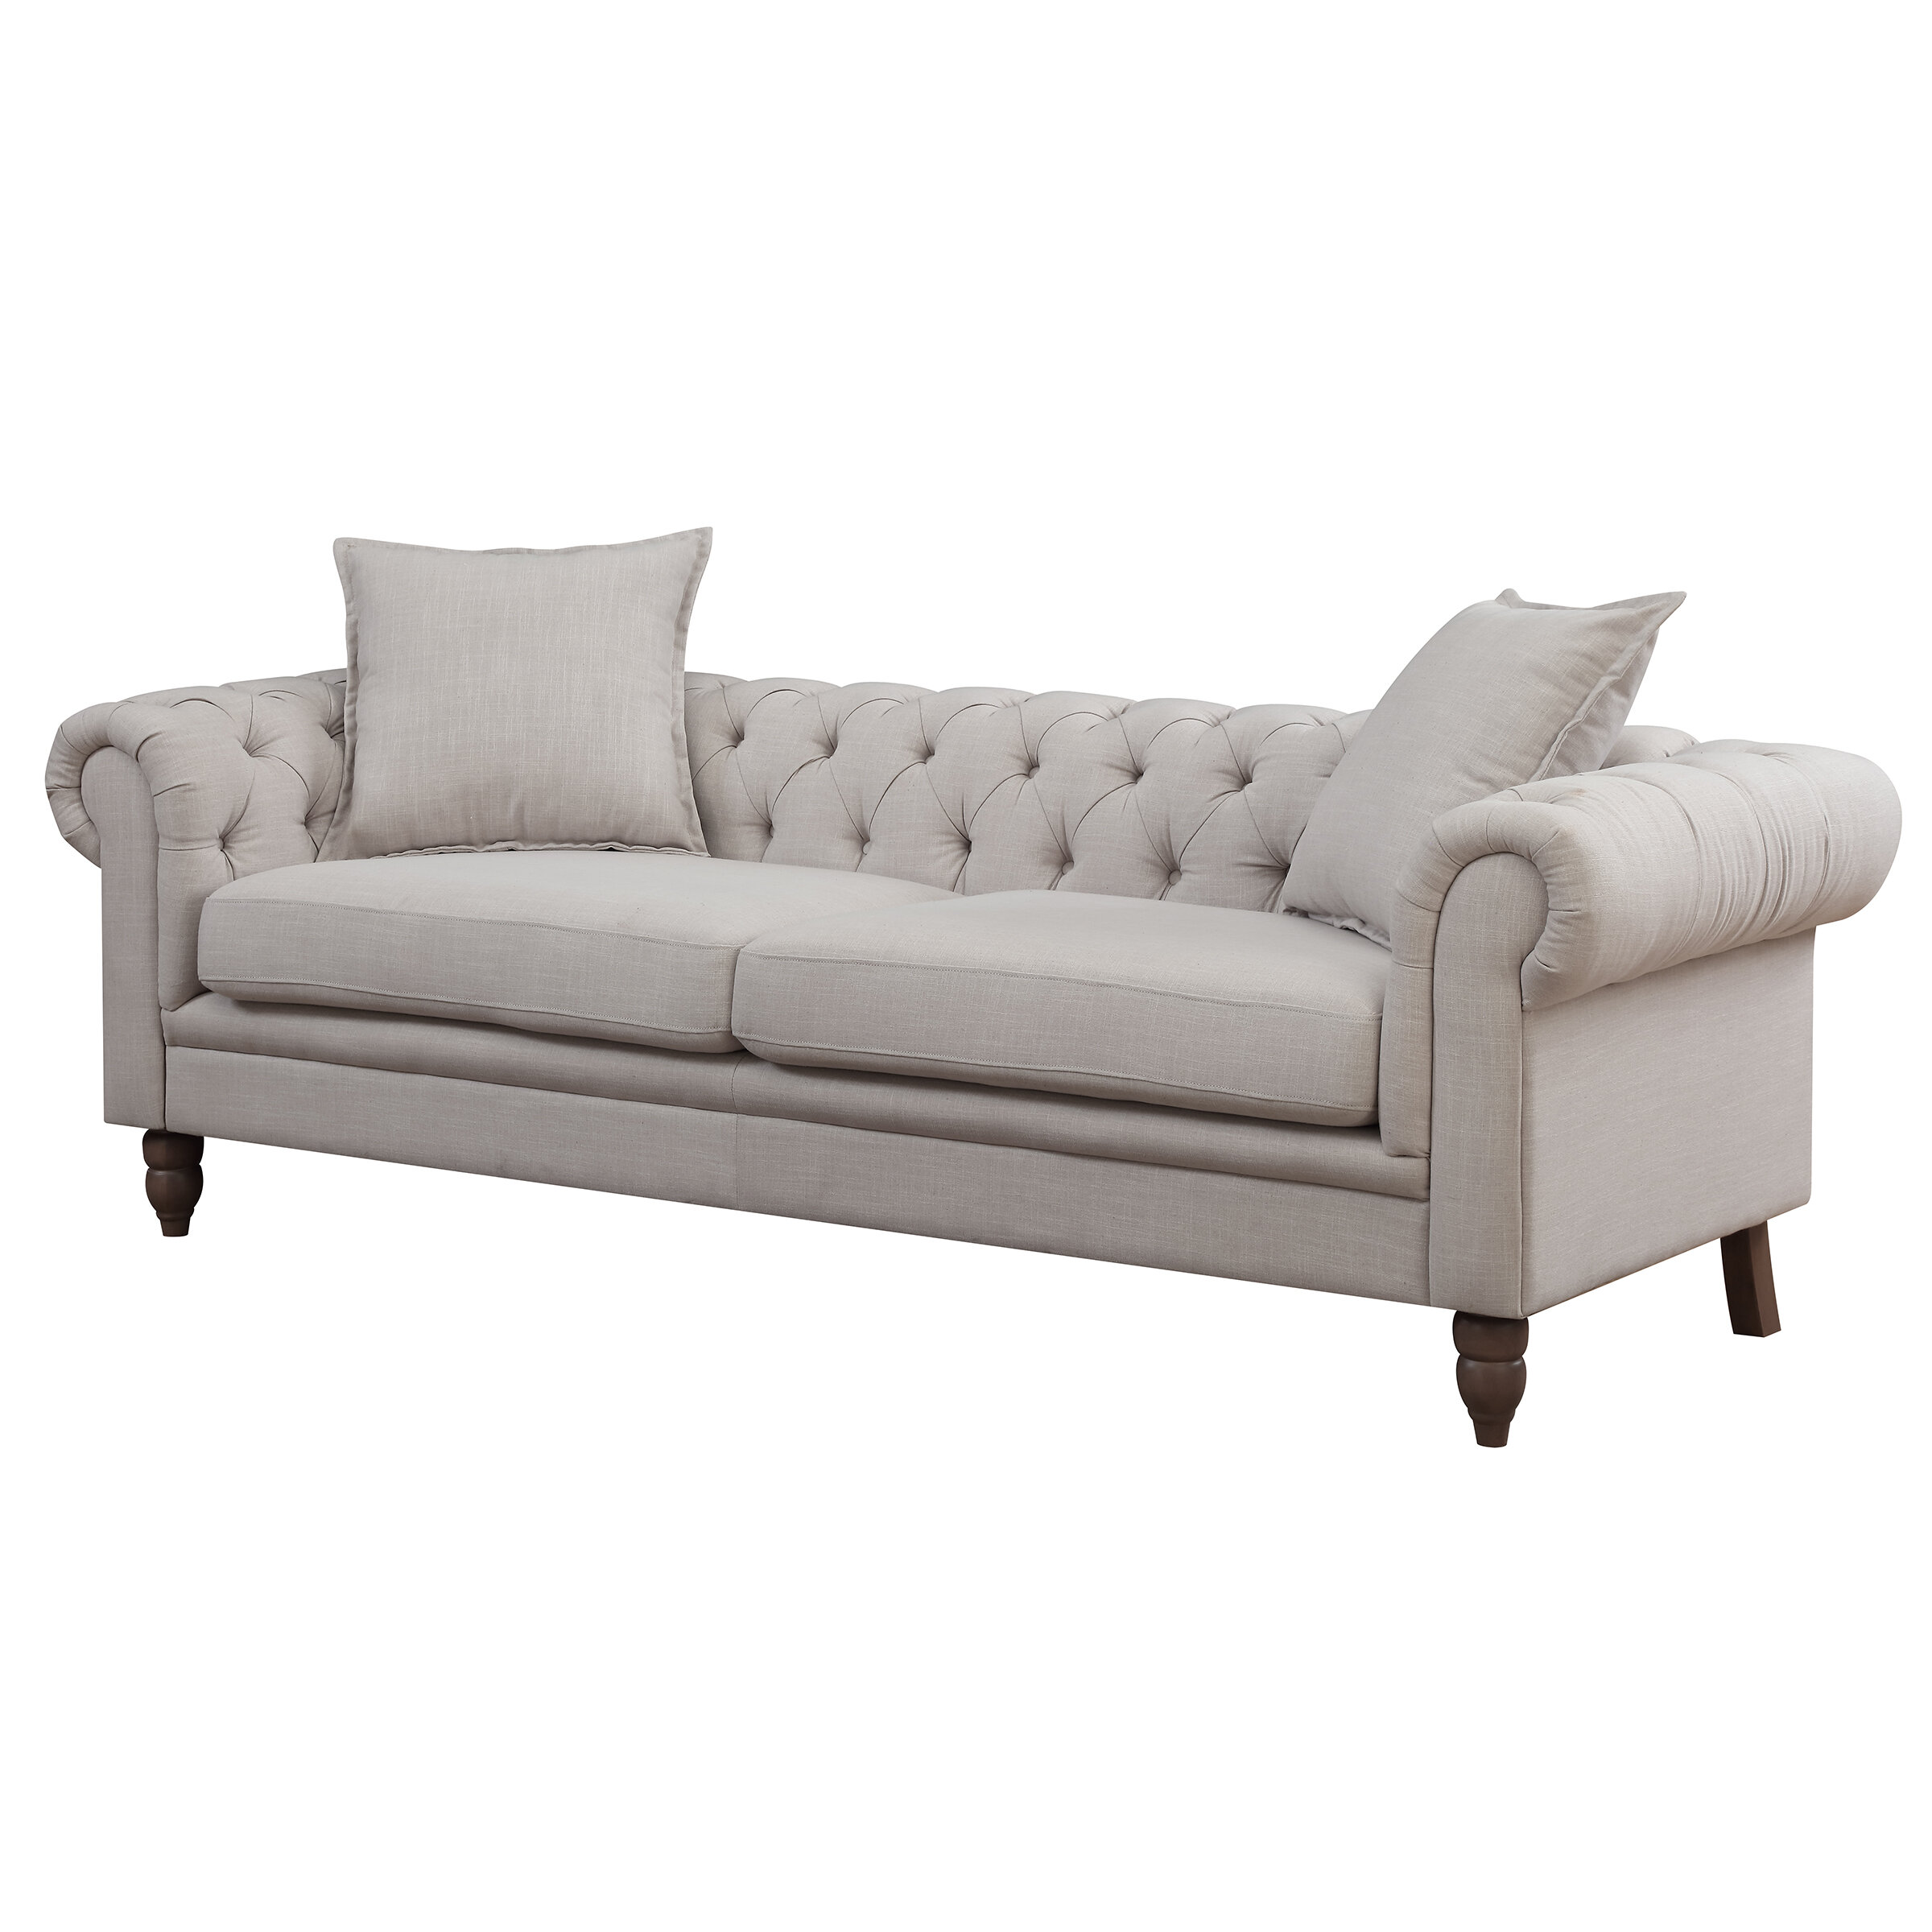 sofa klaussner with chaise wolf attached couch charming folio by lounge reversible loveseat